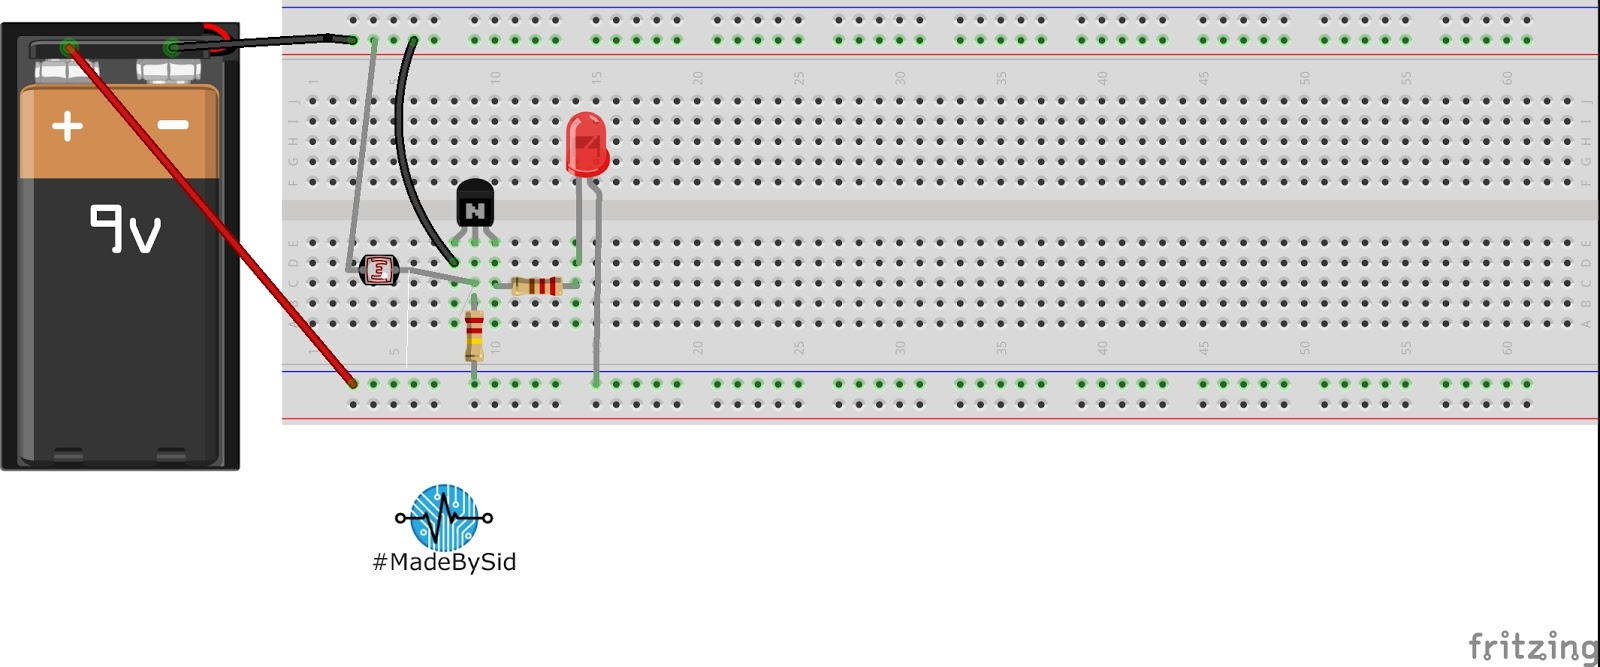 Breadboard Schematic